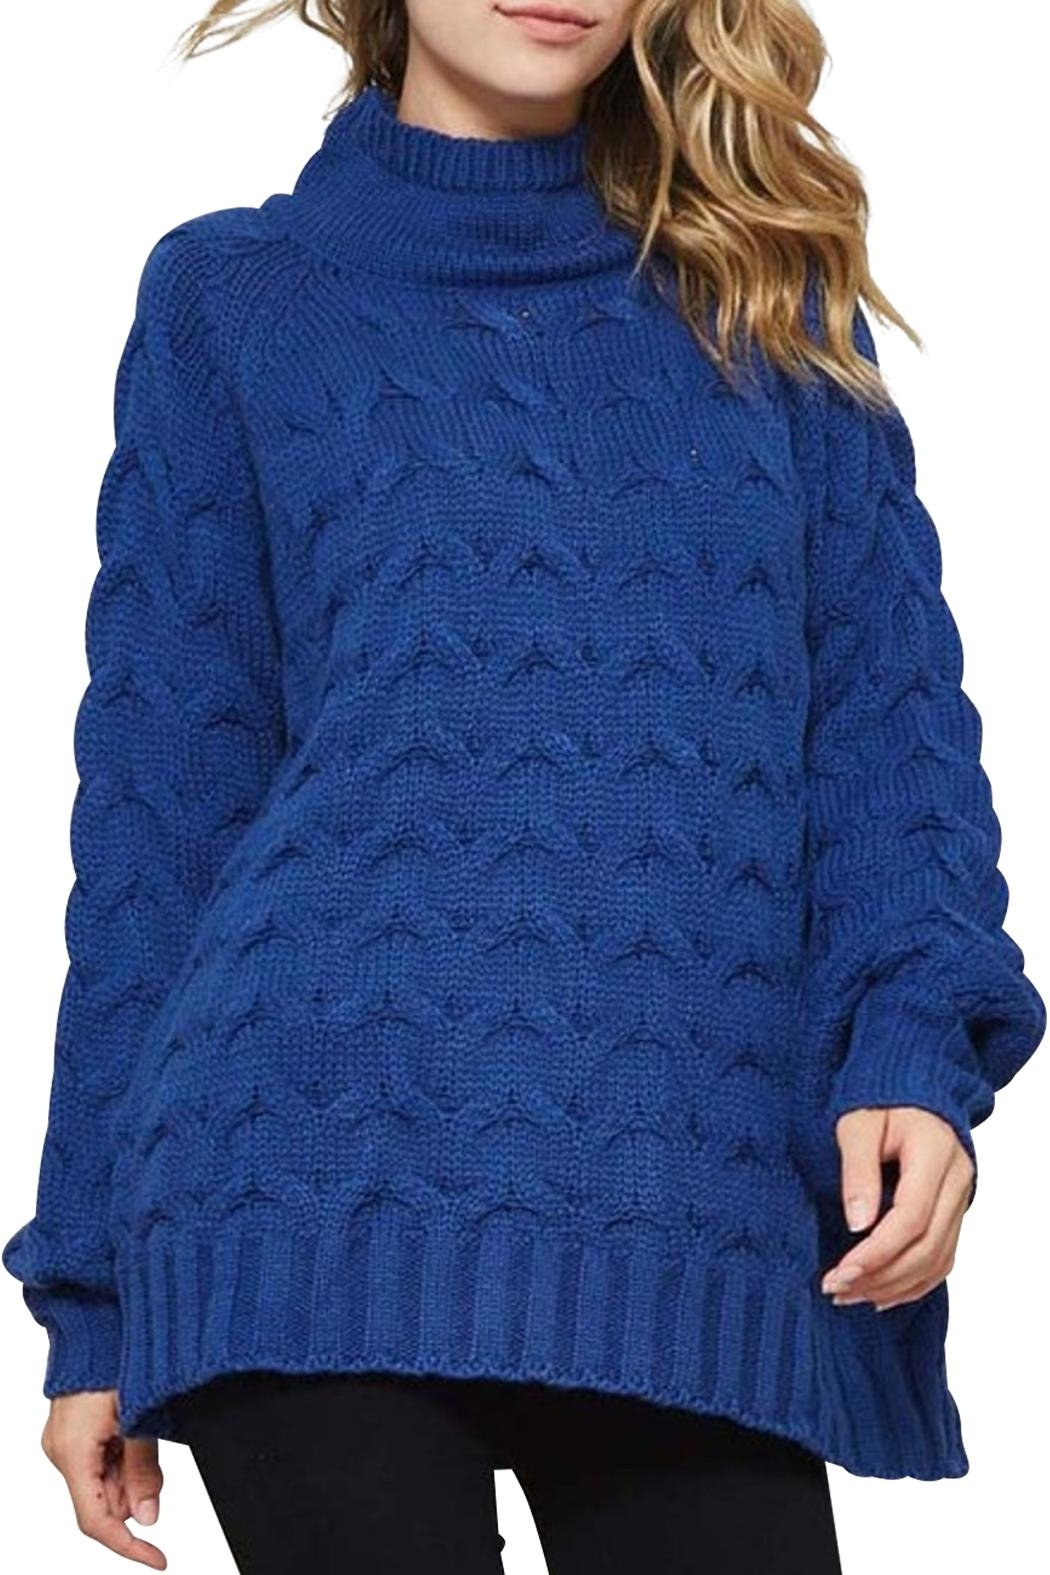 Promesa Cable Knit Sweater - Main Image